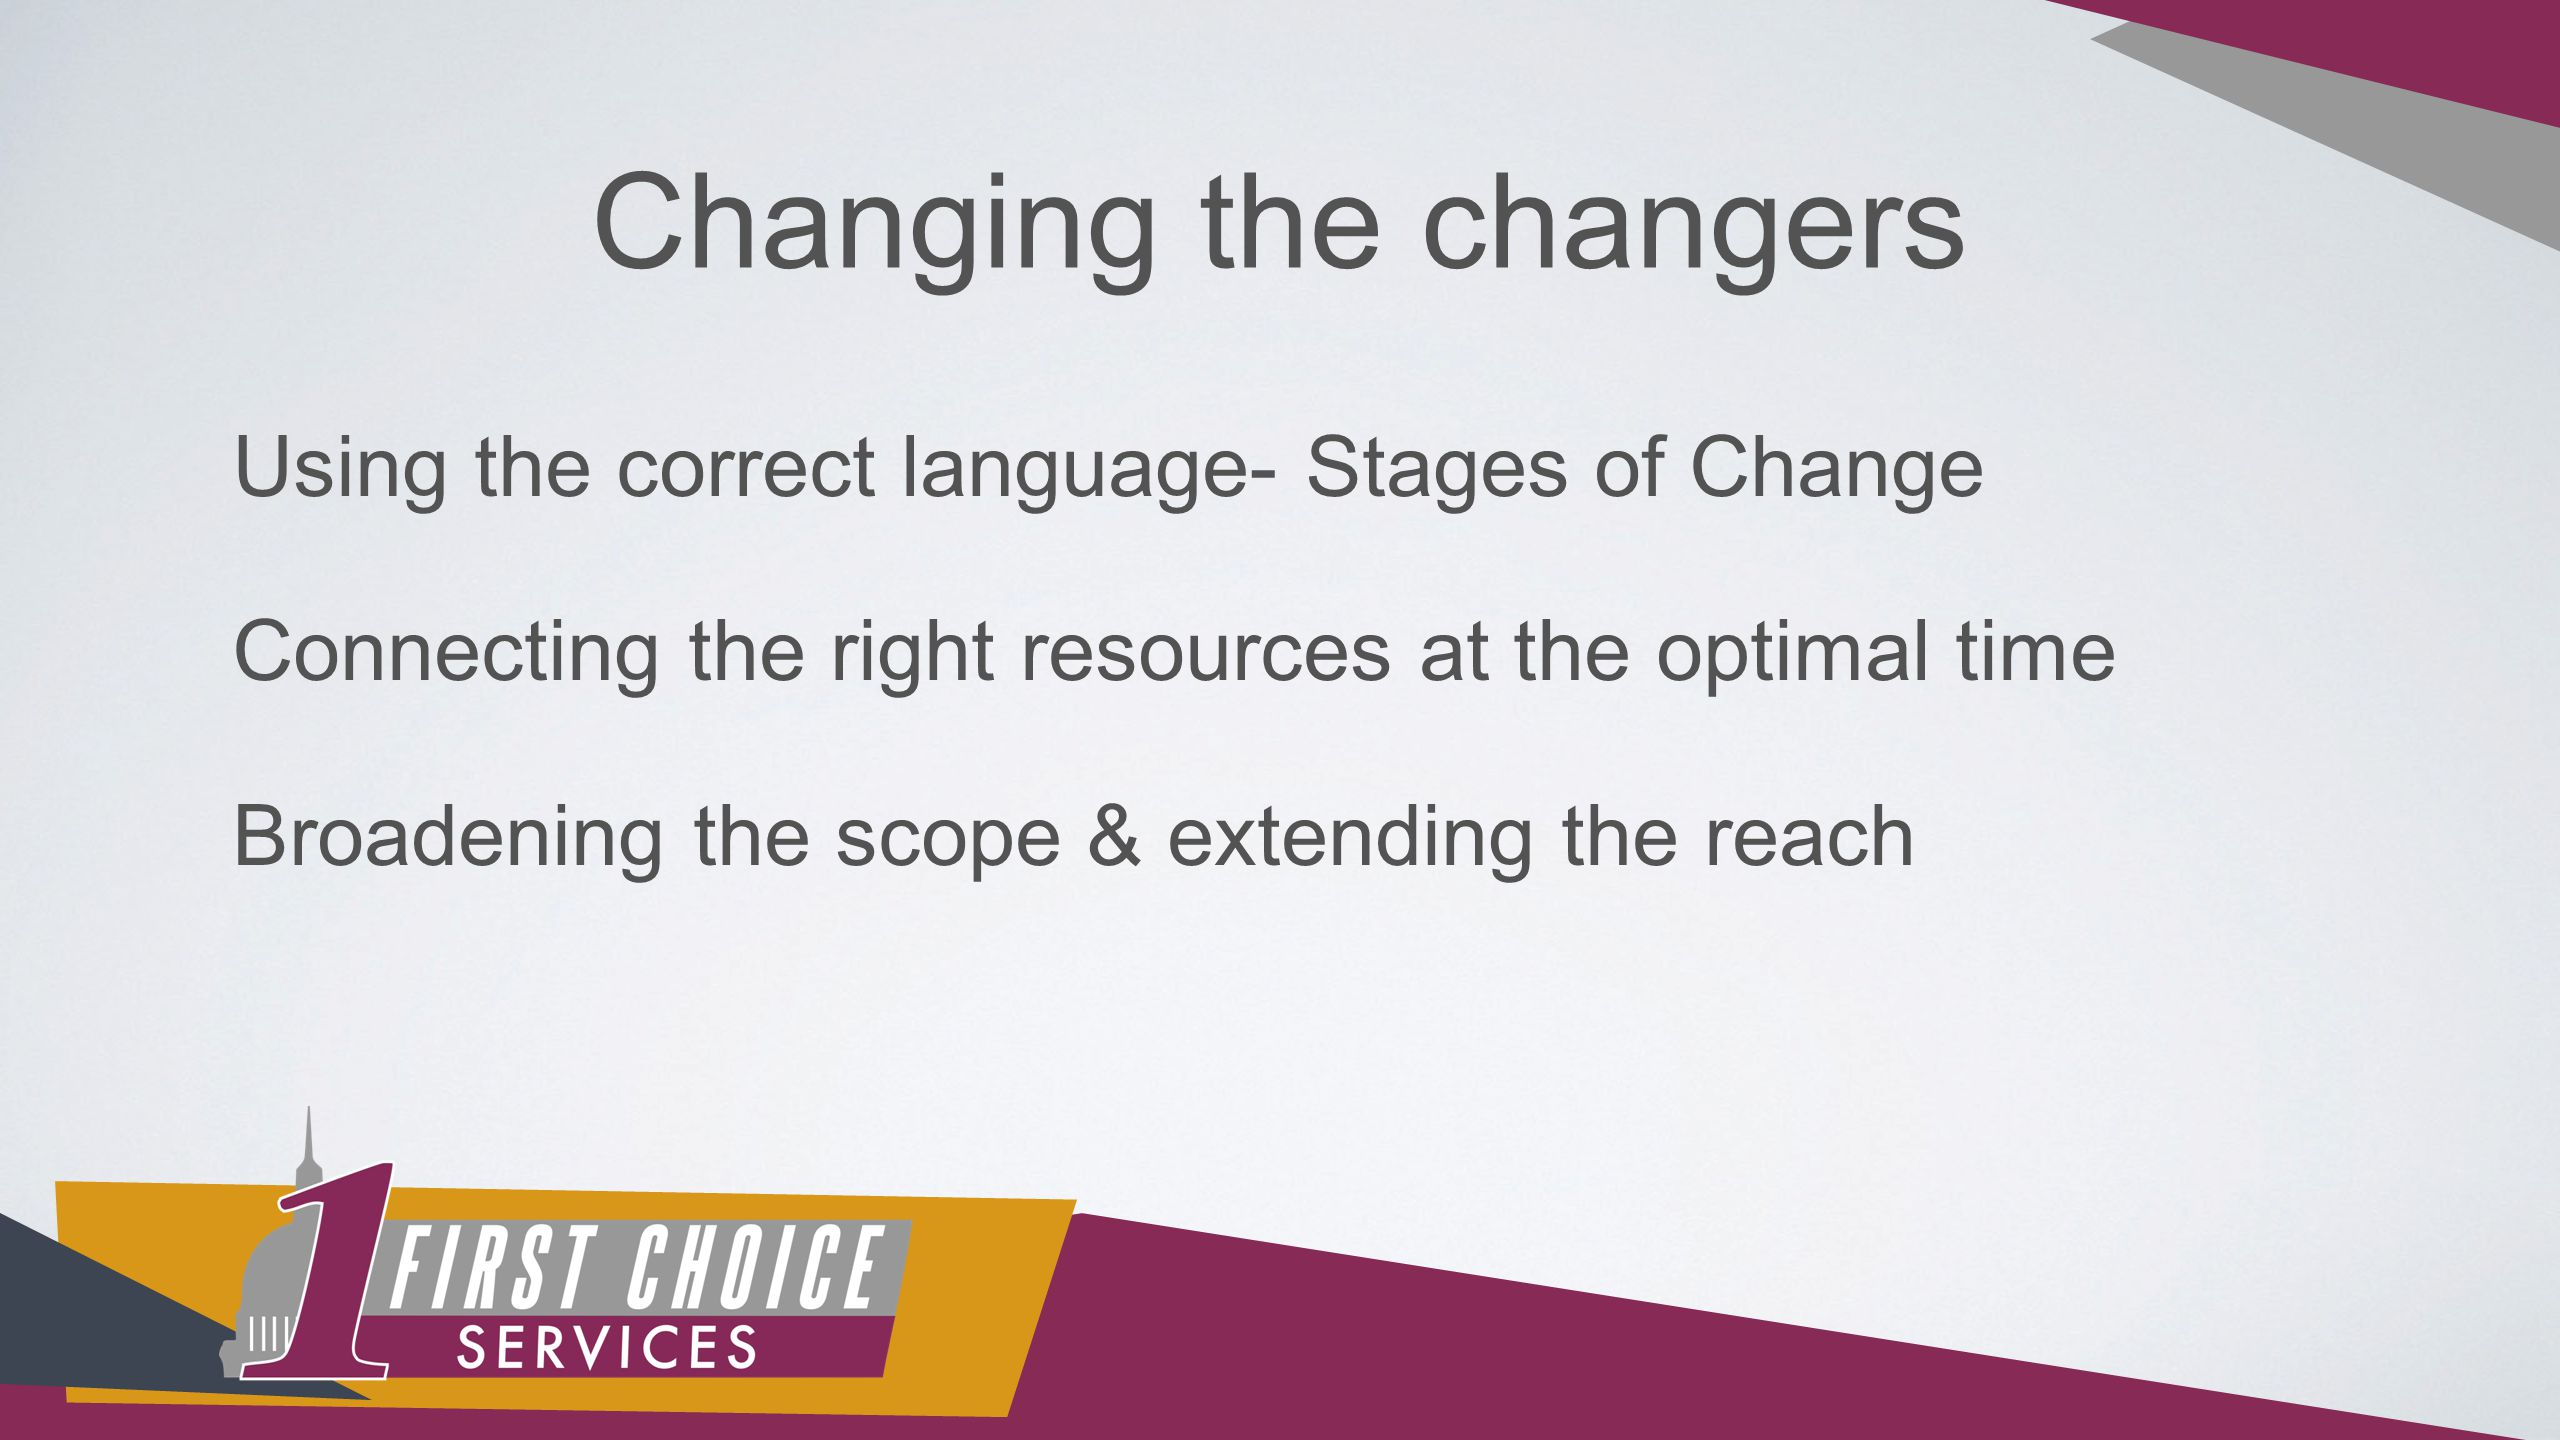 Changing the changers Using the correct language- Stages of Change Connecting the right resources at the optimal time Broadening the scope & extending the reach